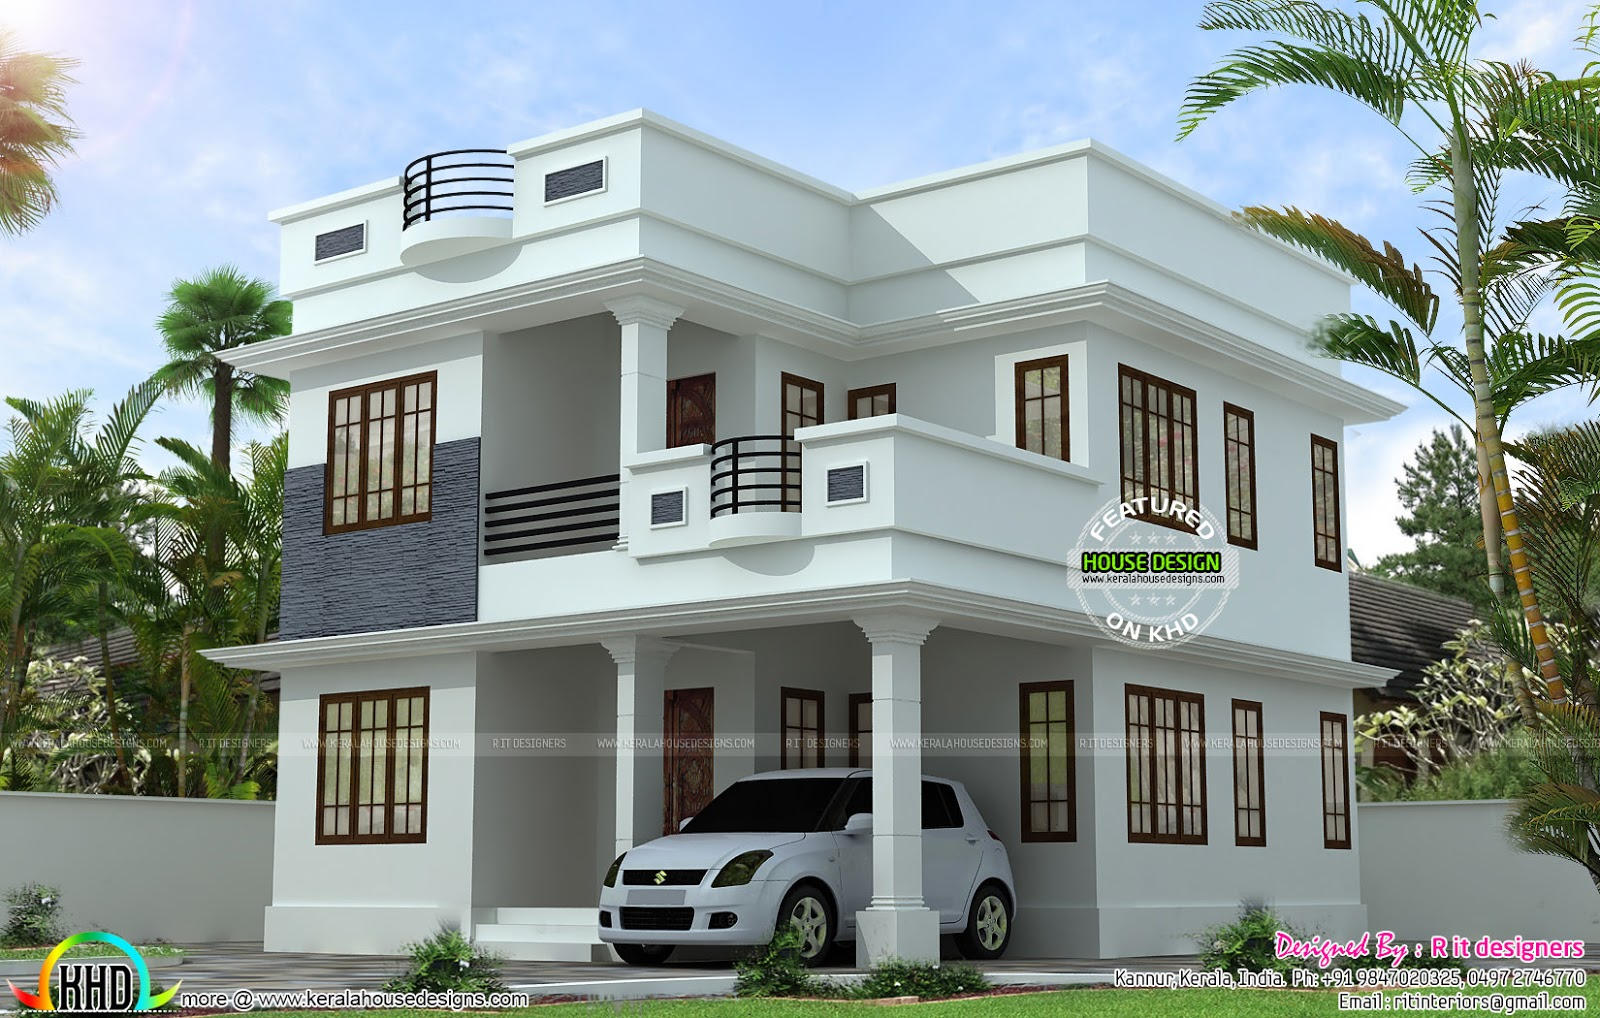 5 Bedroom House Plans amp Designs for Africa  Maramanicom